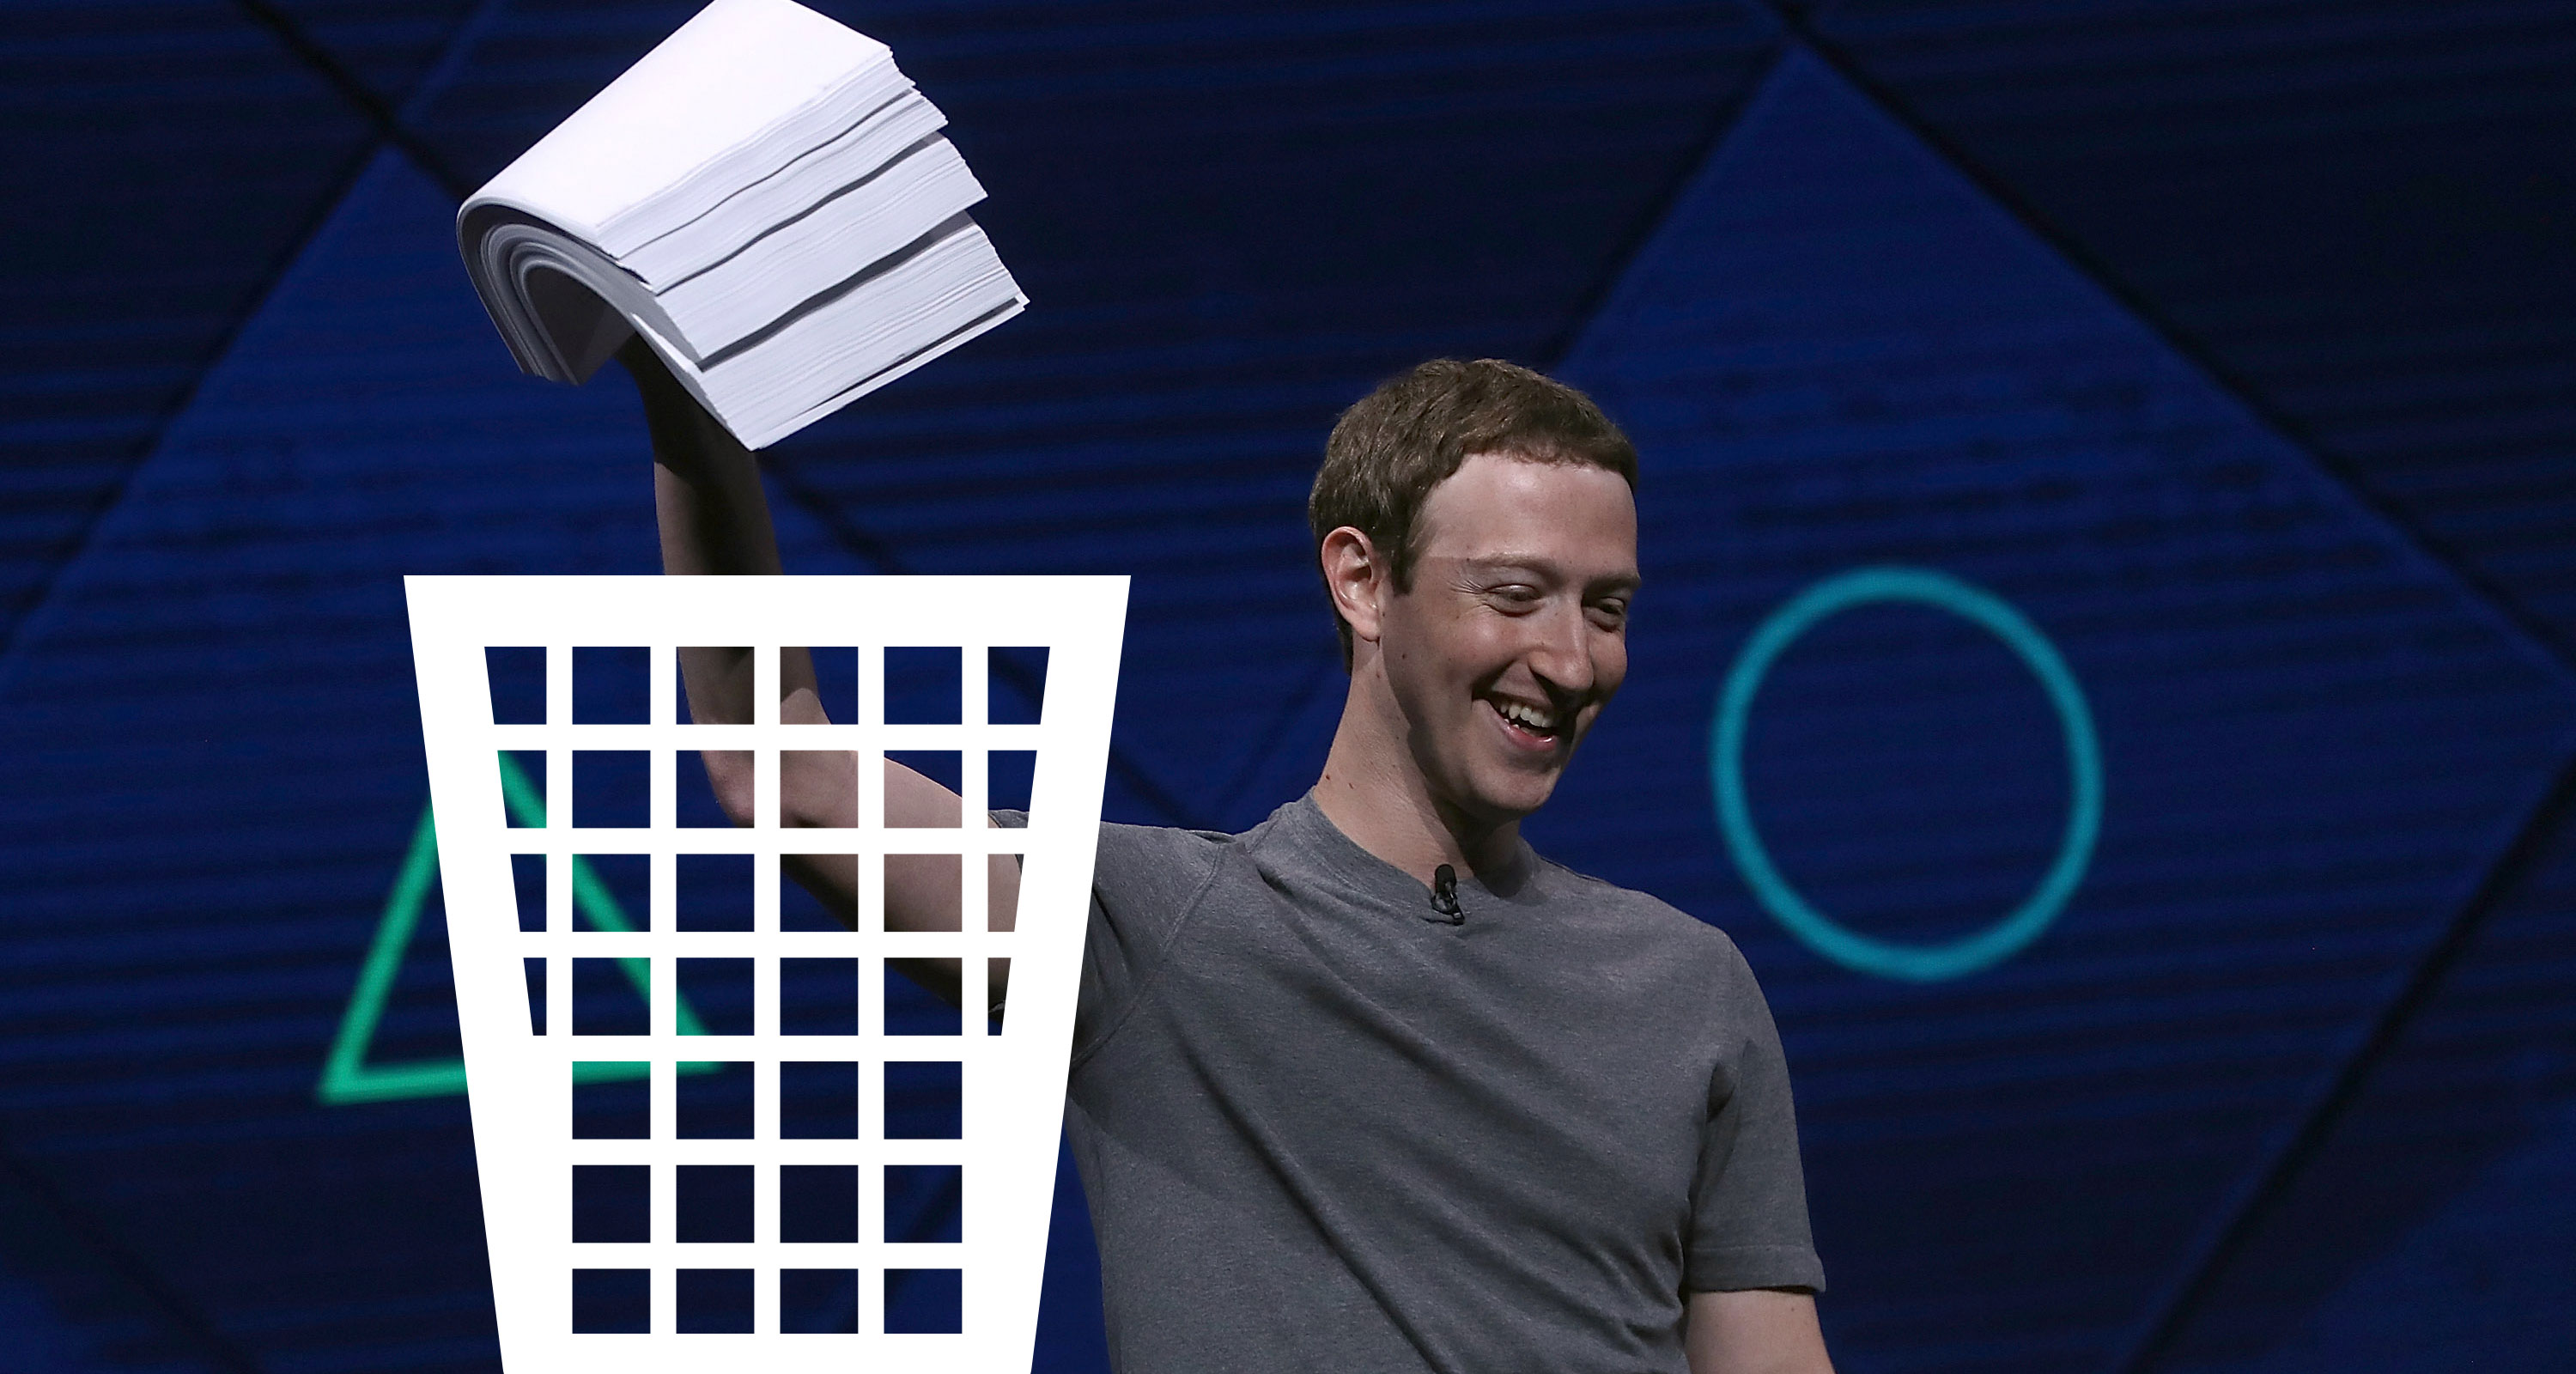 Facebook adds disclosure requirements for issue ads